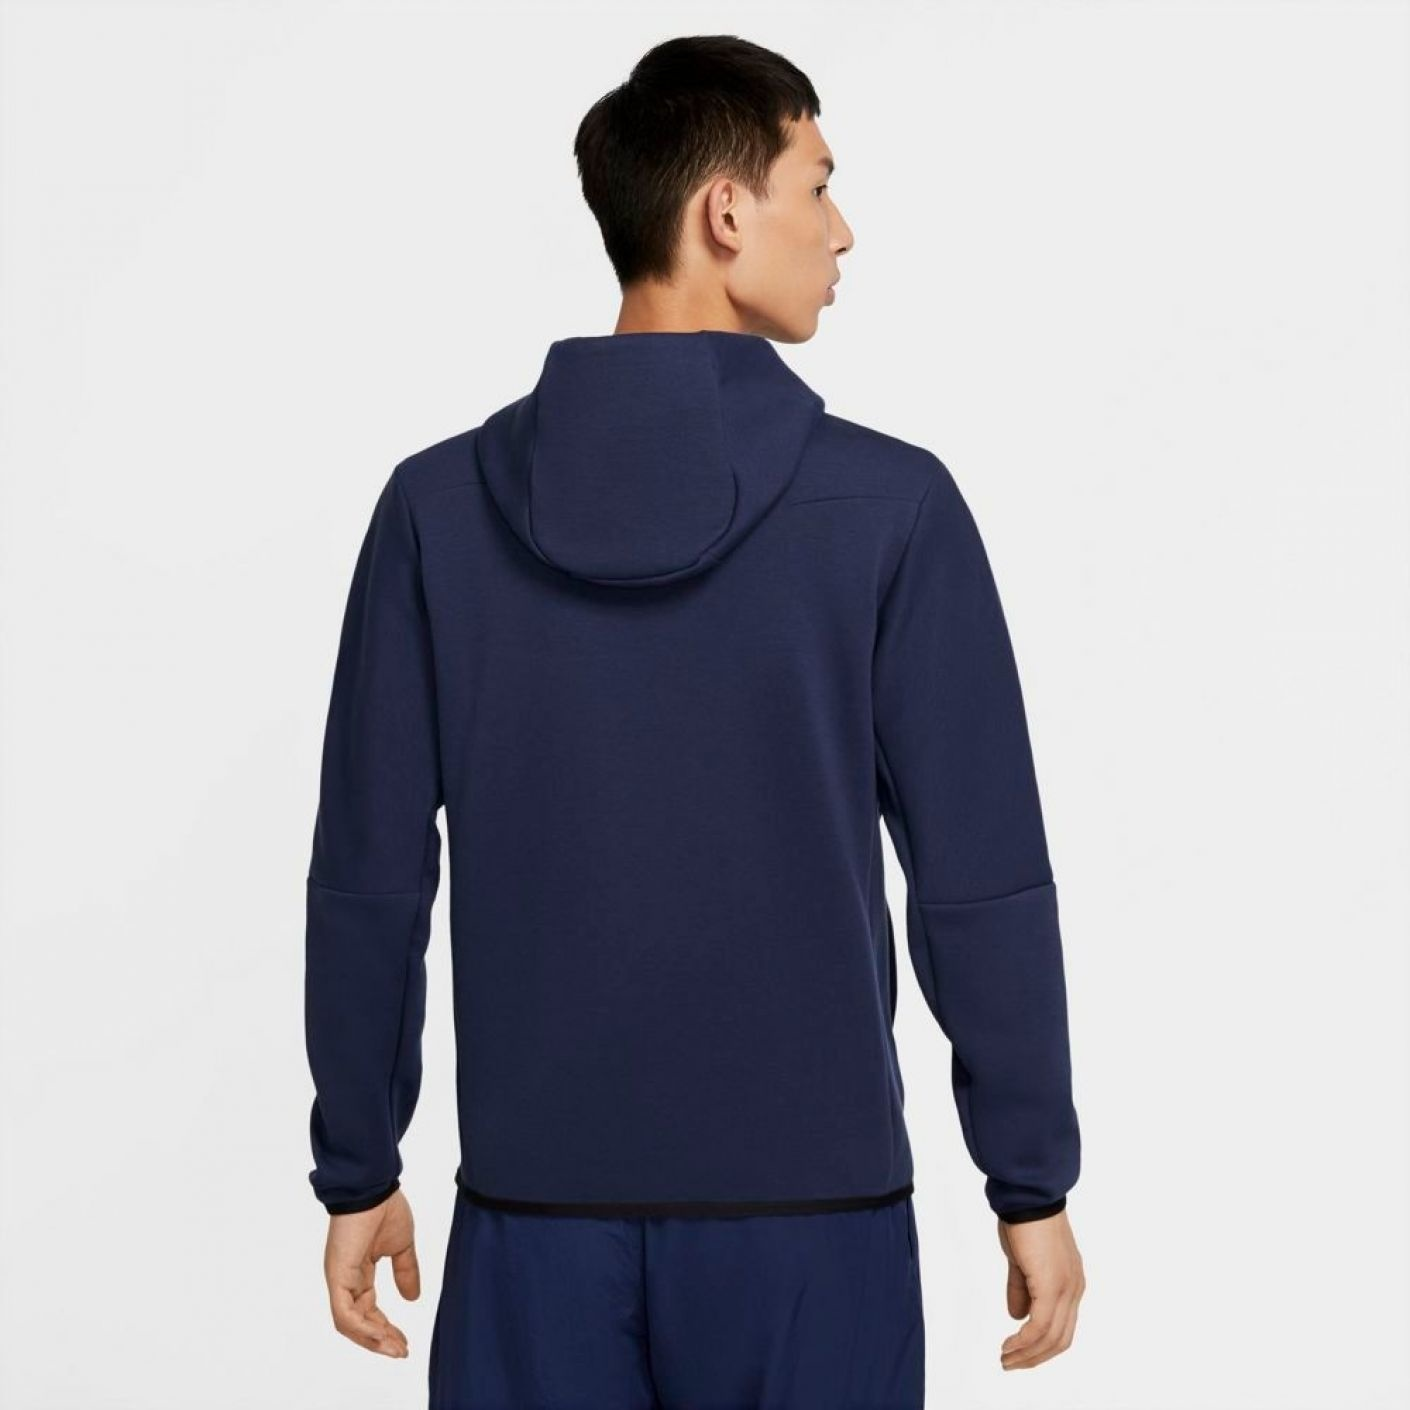 Nike Tech Fleece Windrunner donker blauw